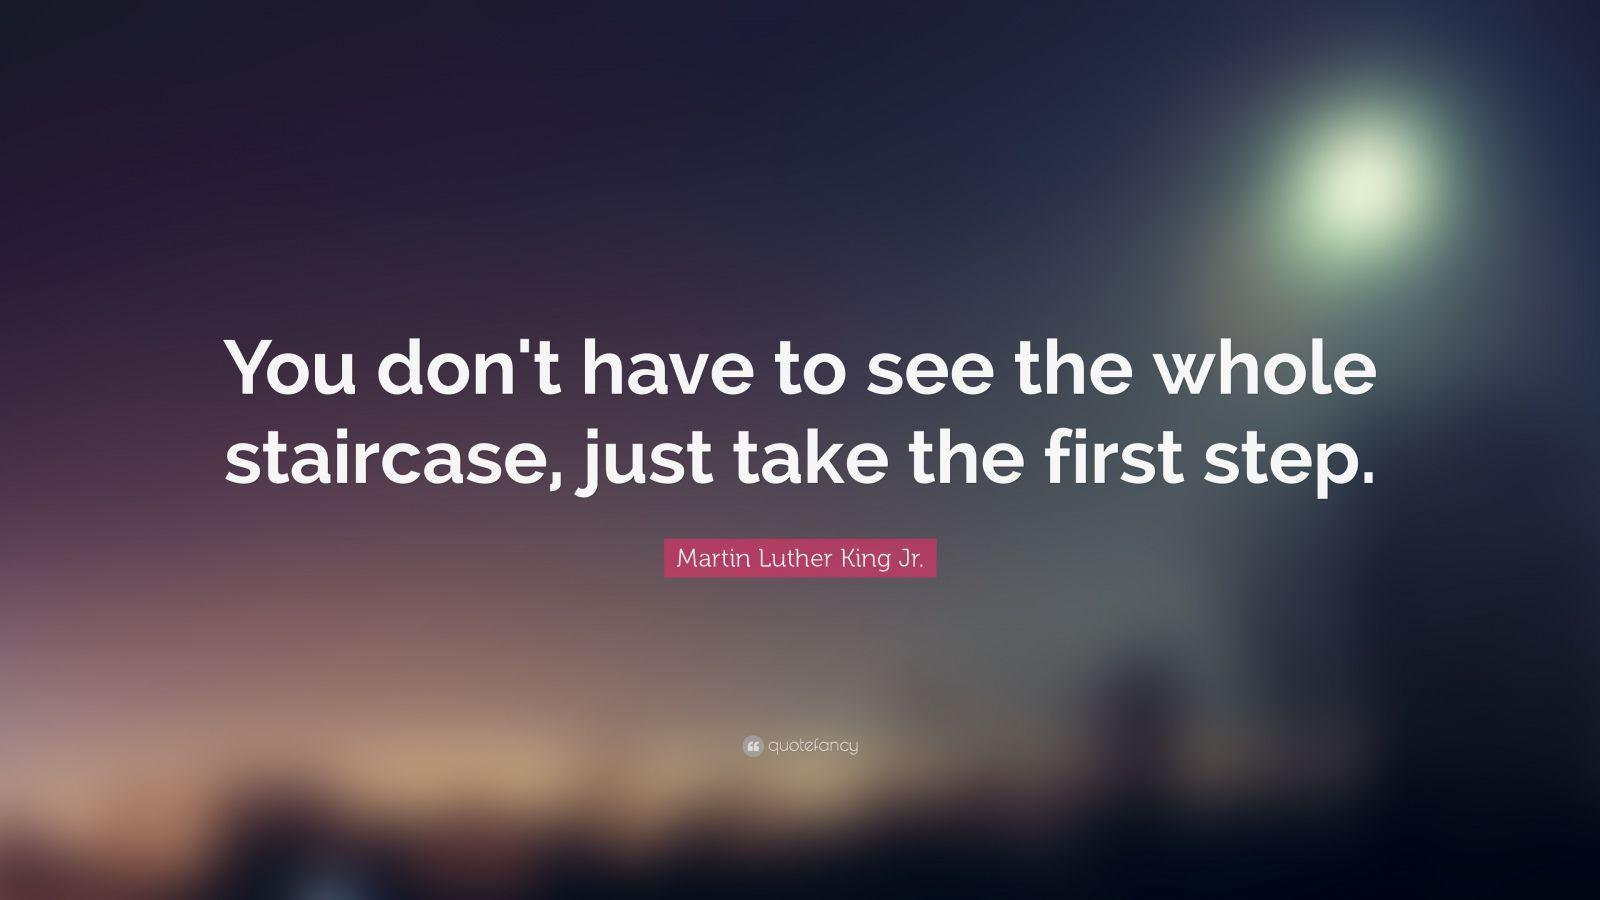 Martin Luther King Jr. Quotes (100 wallpapers) - Quotefancy